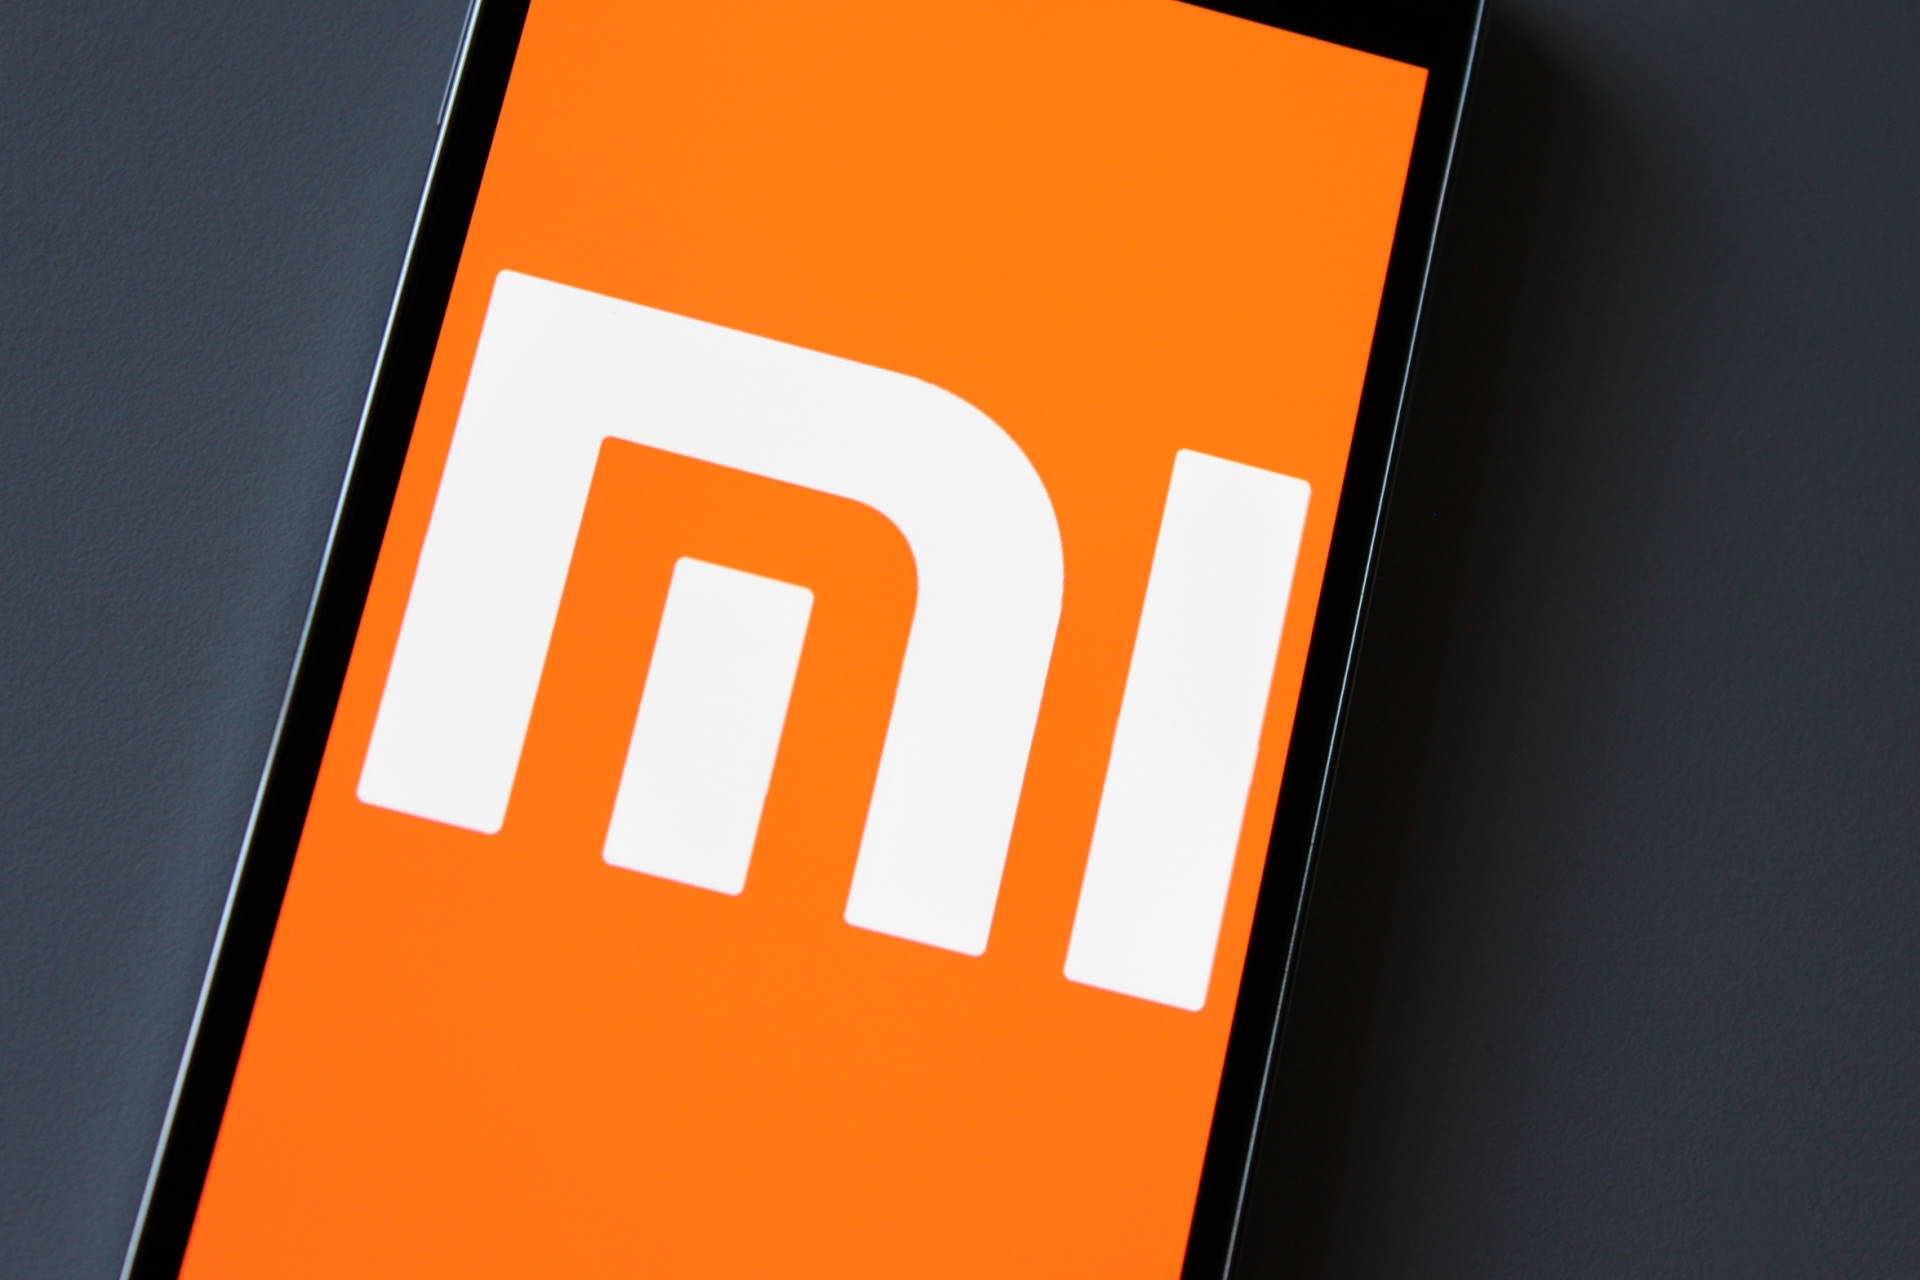 Xiaomi Redmi Note 3 announced and here are its pricing details